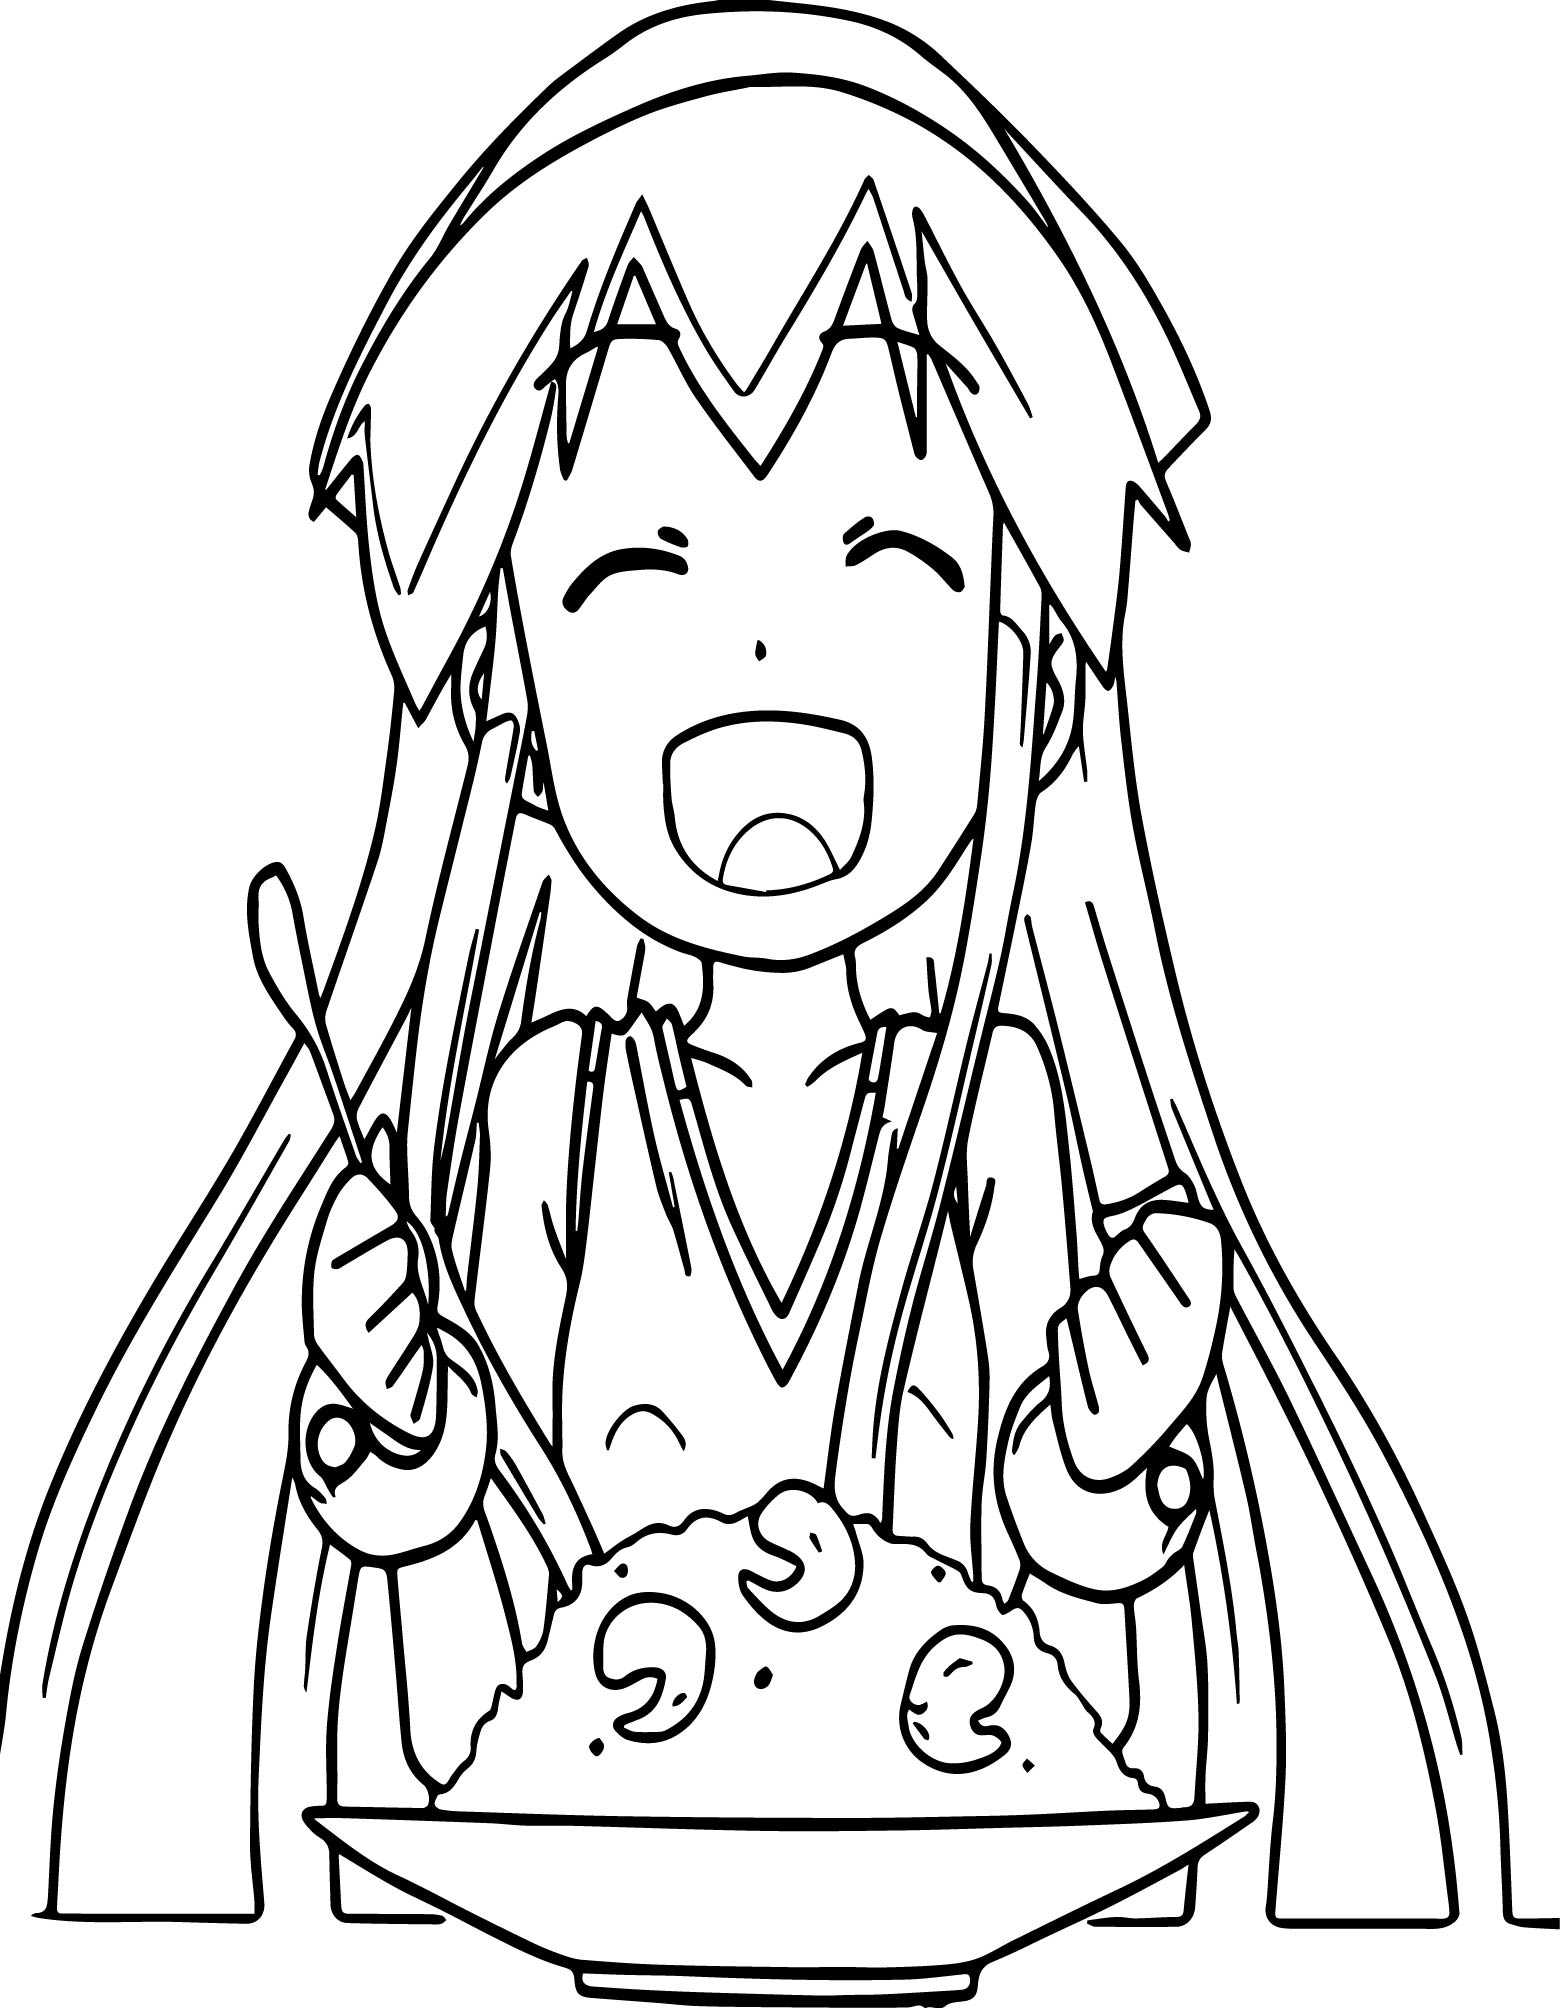 Laugh Squid Girl An Eat Food Coloring Page